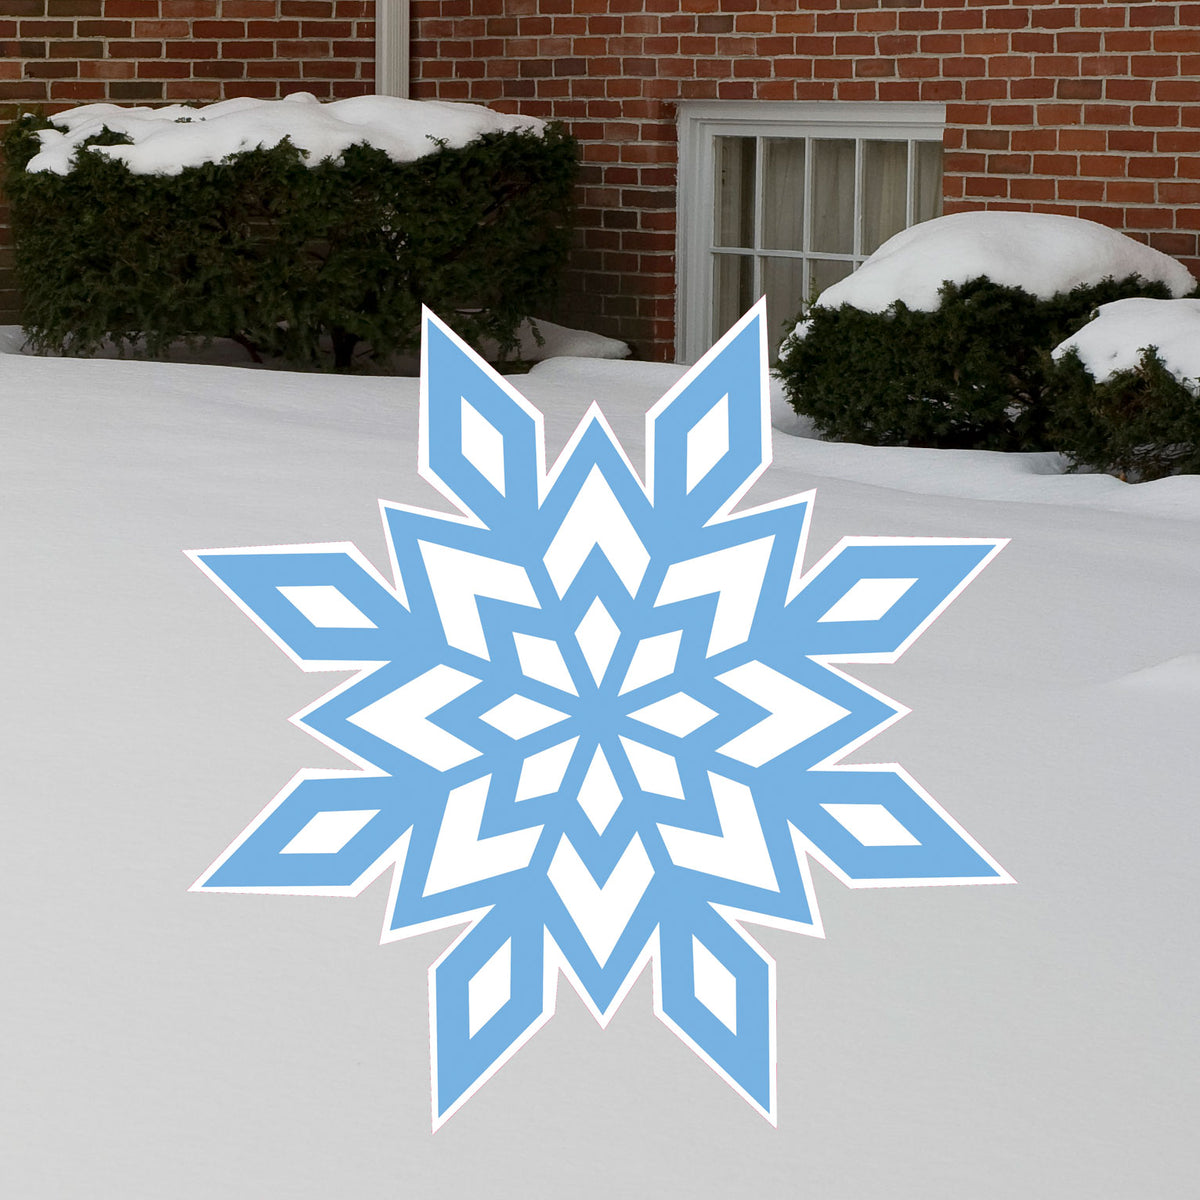 2 ft. 1 in. Traditional Snowflake Yard Sign Expression Icon